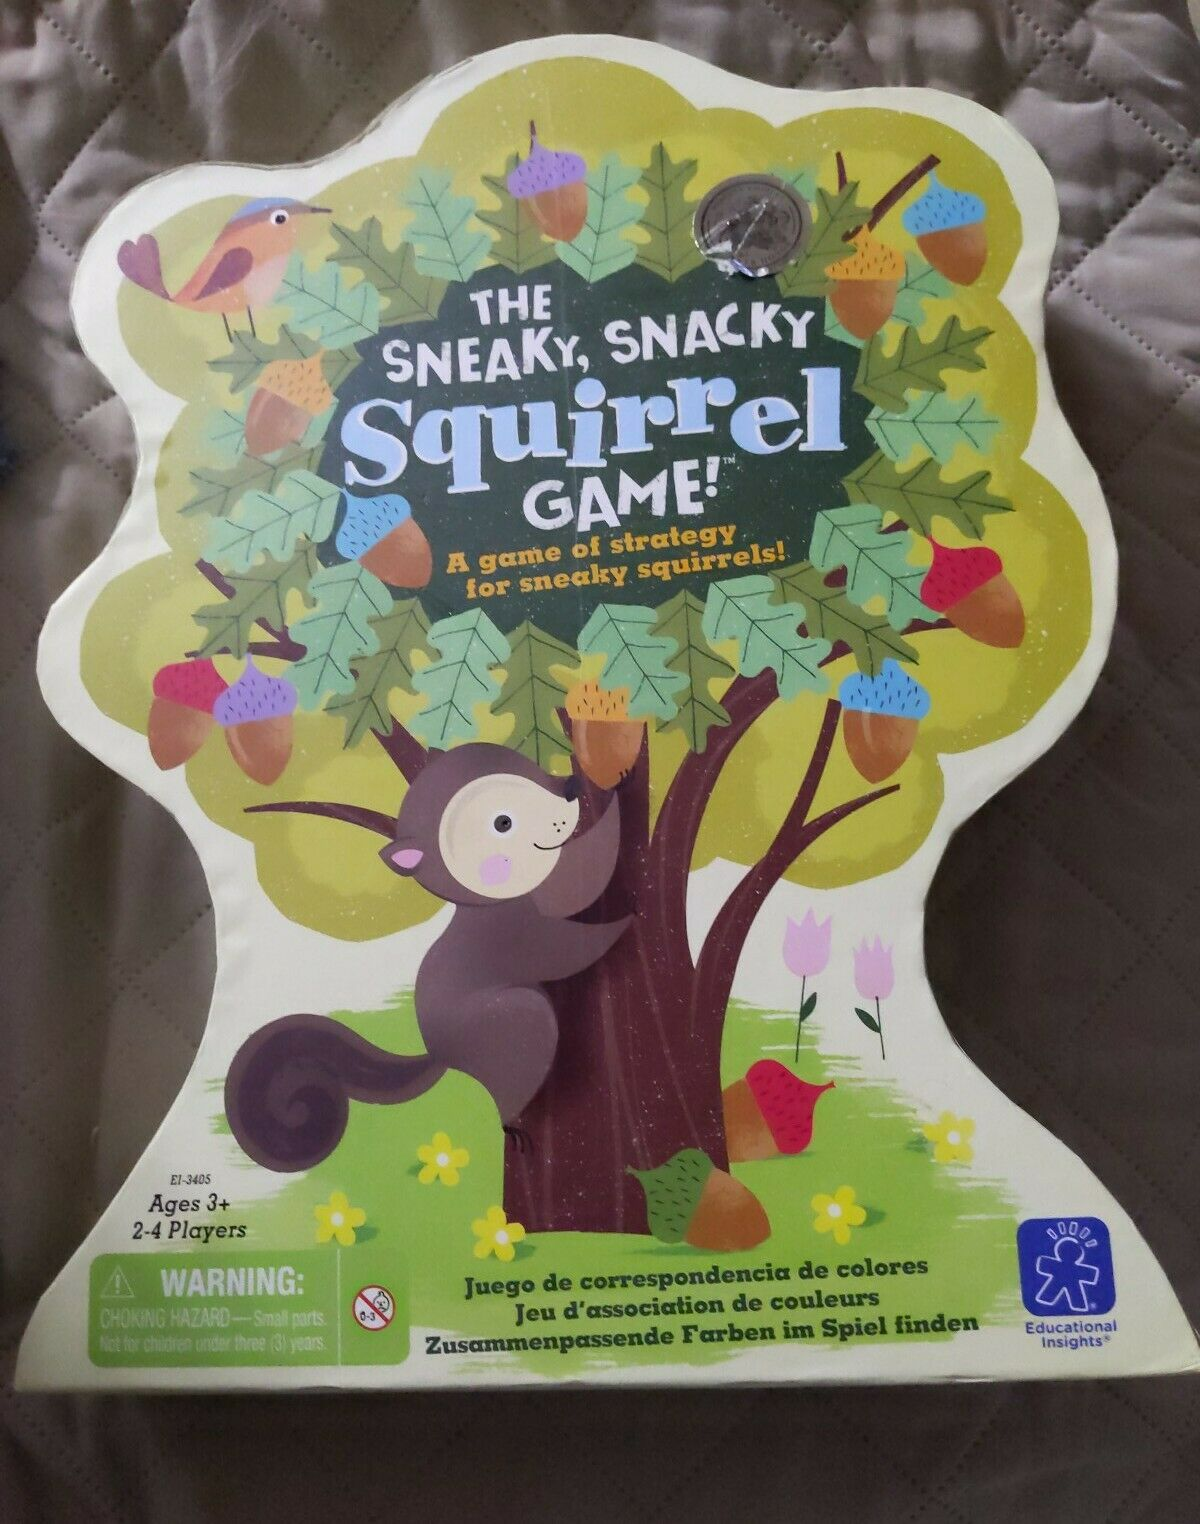 Educational Insights The Sneaky, Snacky Squirrel Game 100% complete 6